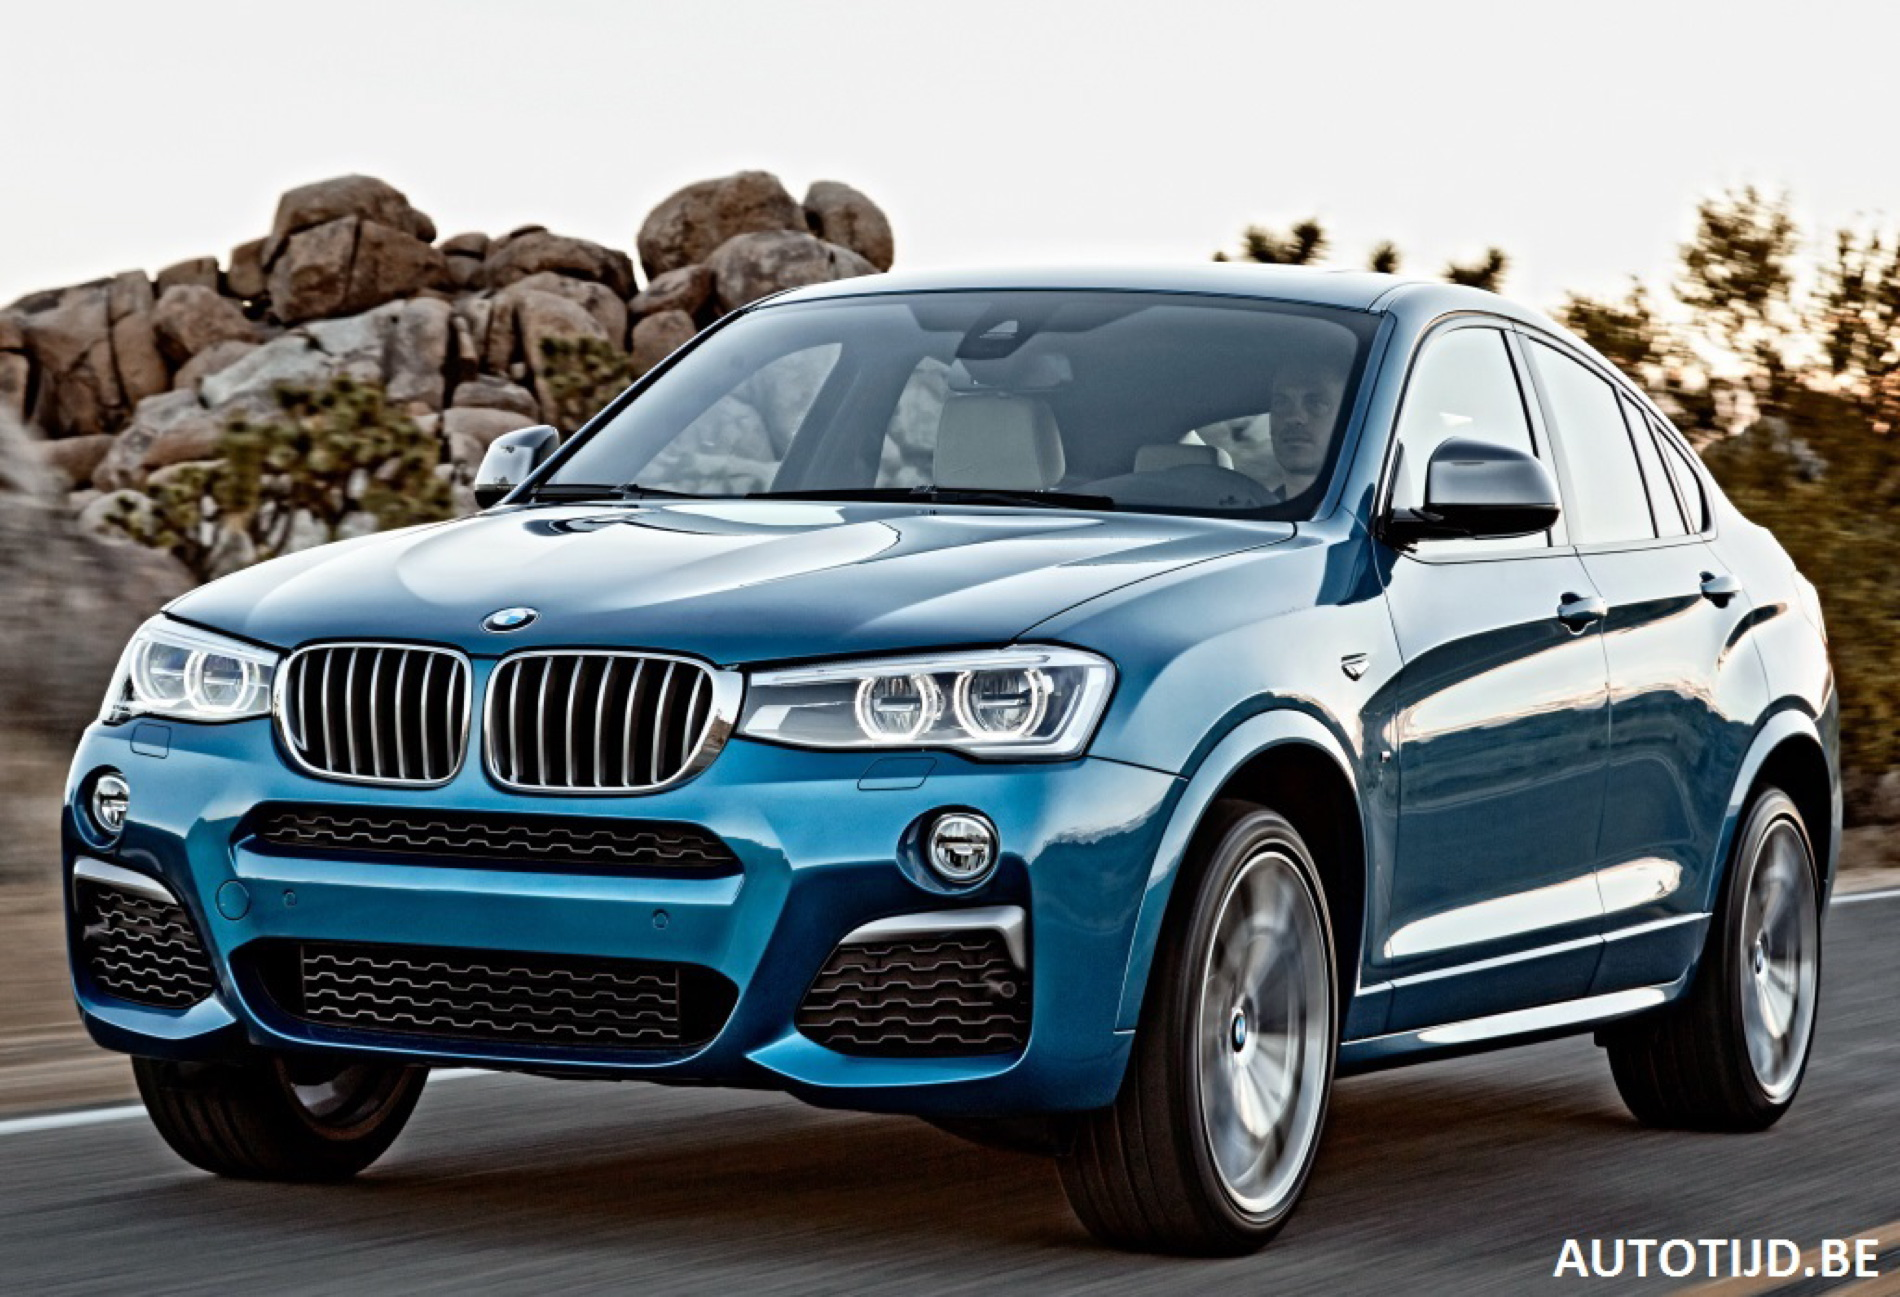 Recently Some Photos Of The Highly Anticipated 2017 BMW X4 M40i Were Released By AutoTijdbe Offering Fans A Glimpse At What They Can Expect From This